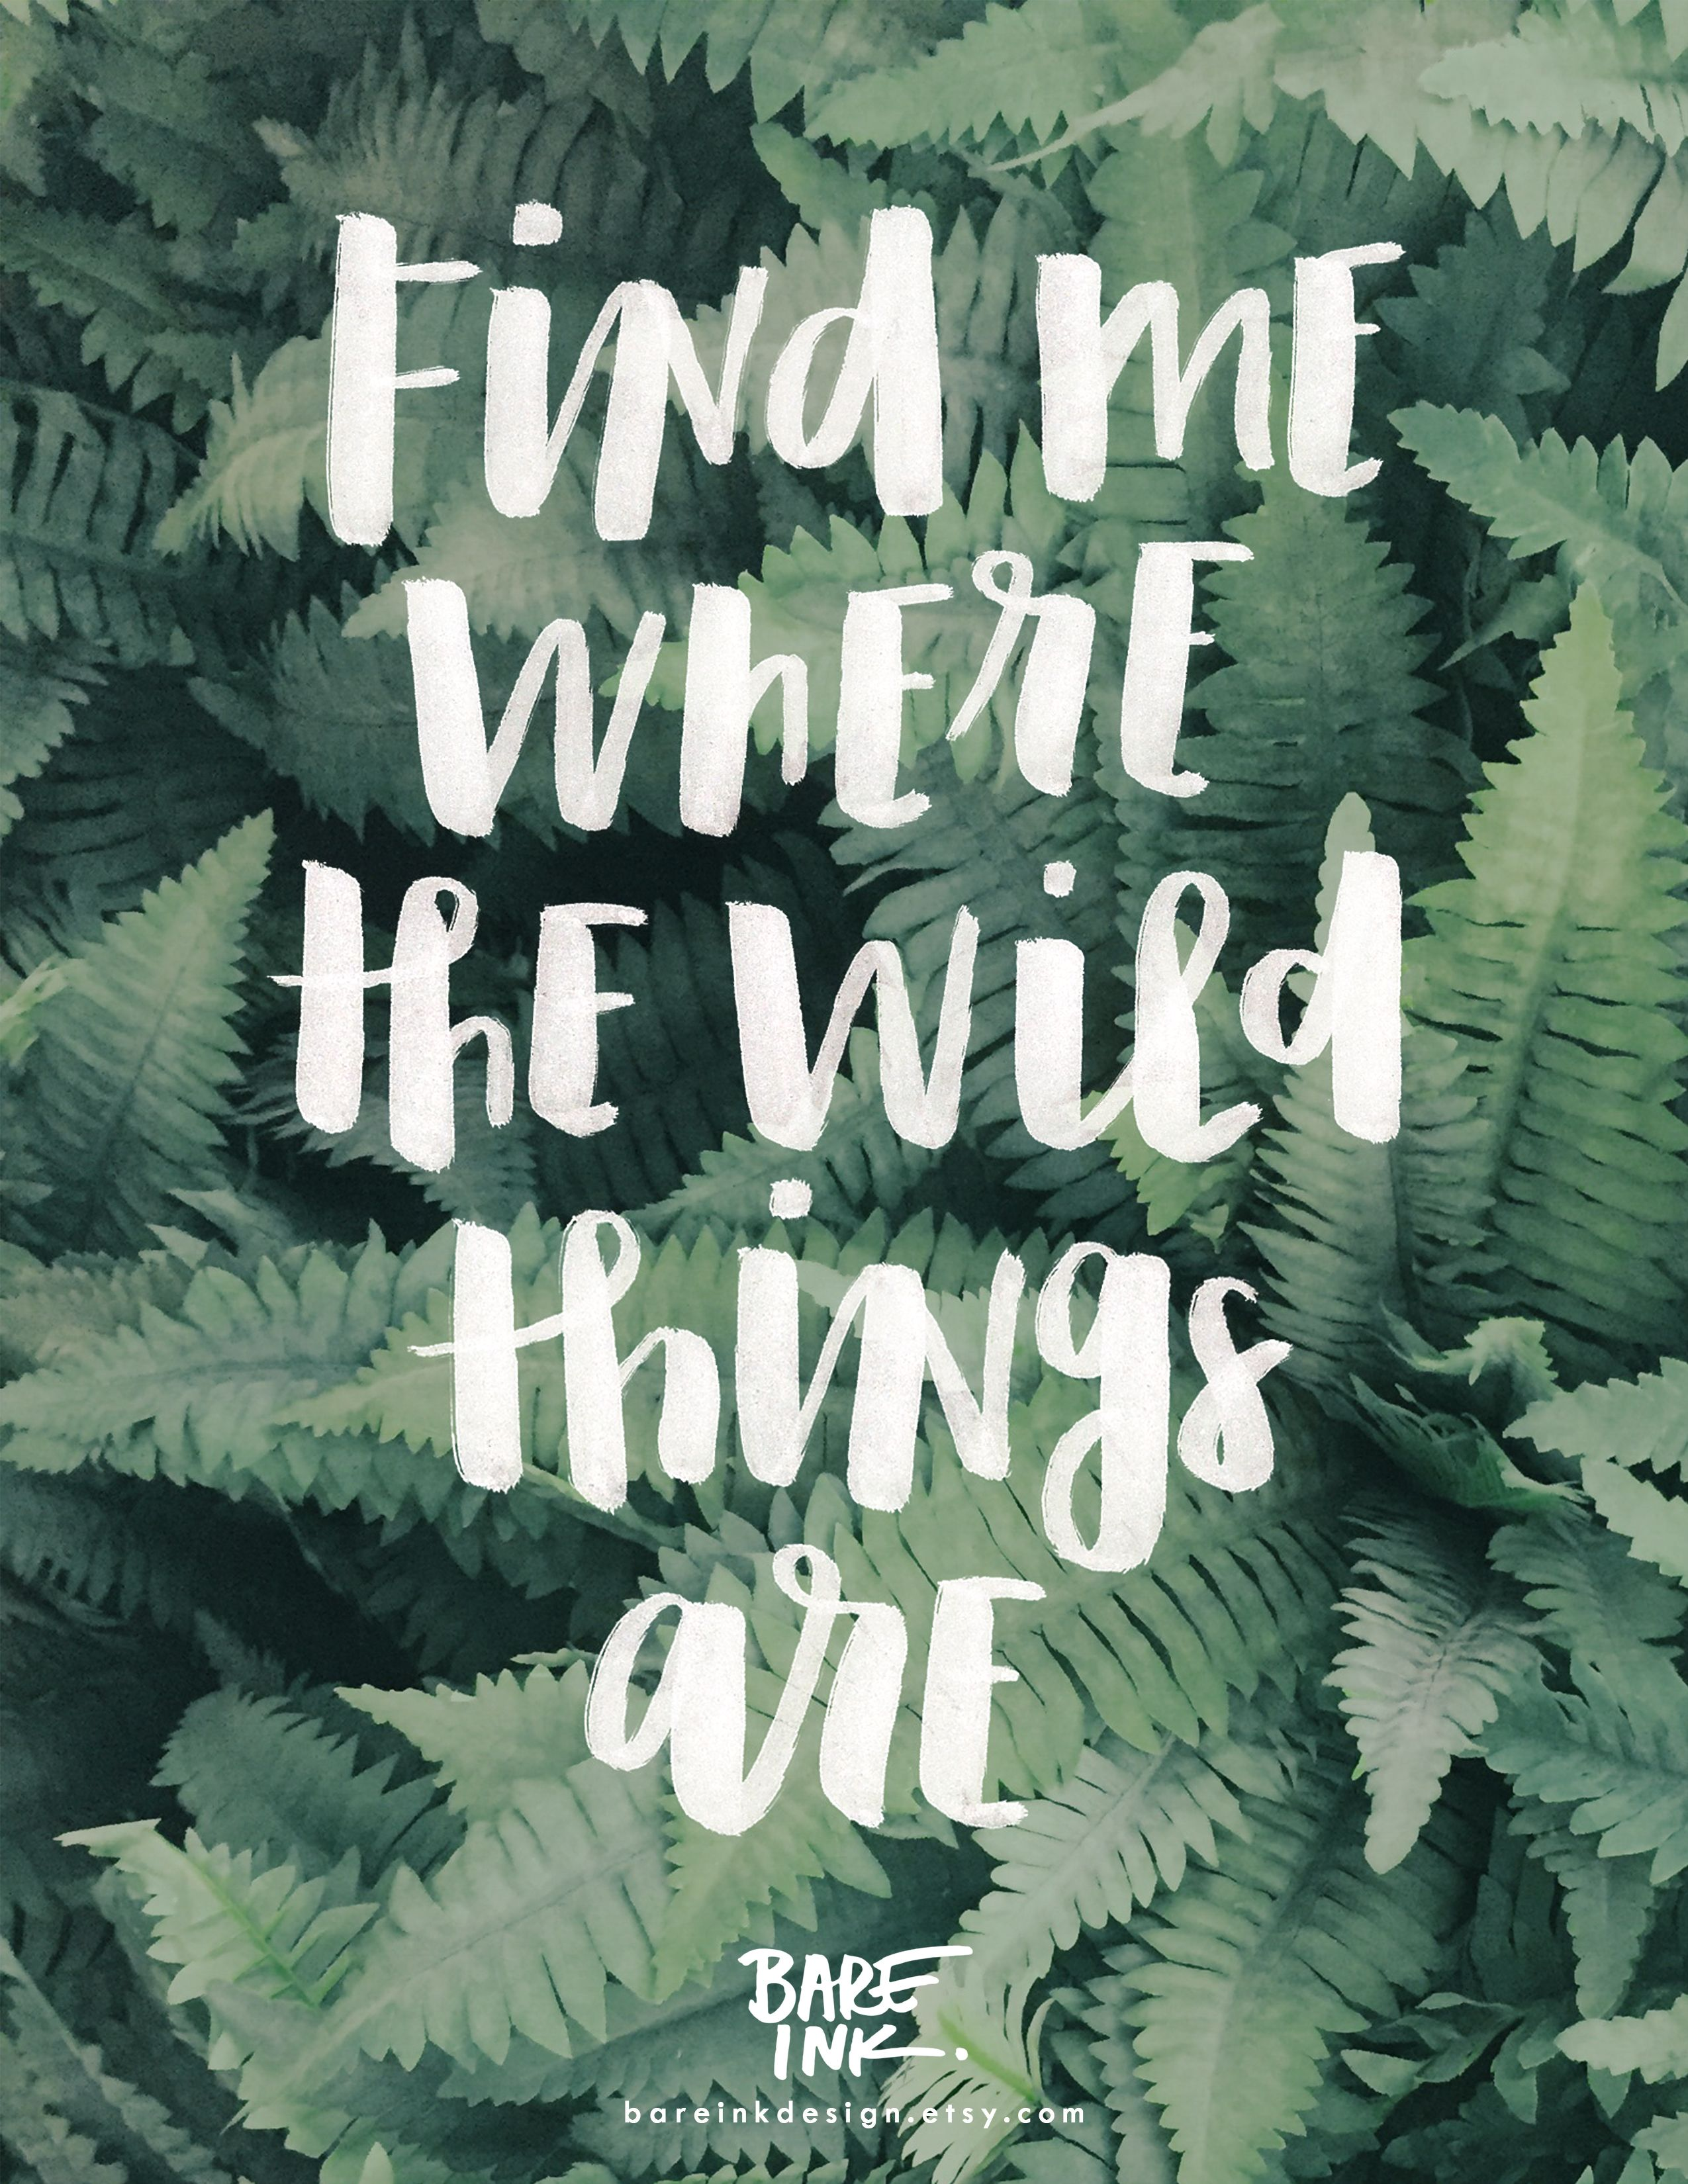 Home about wild heart ask tumblr weekly wild music - Find Me Where The Wild Things Are Home Decor Hand Lettered Wall Art Print